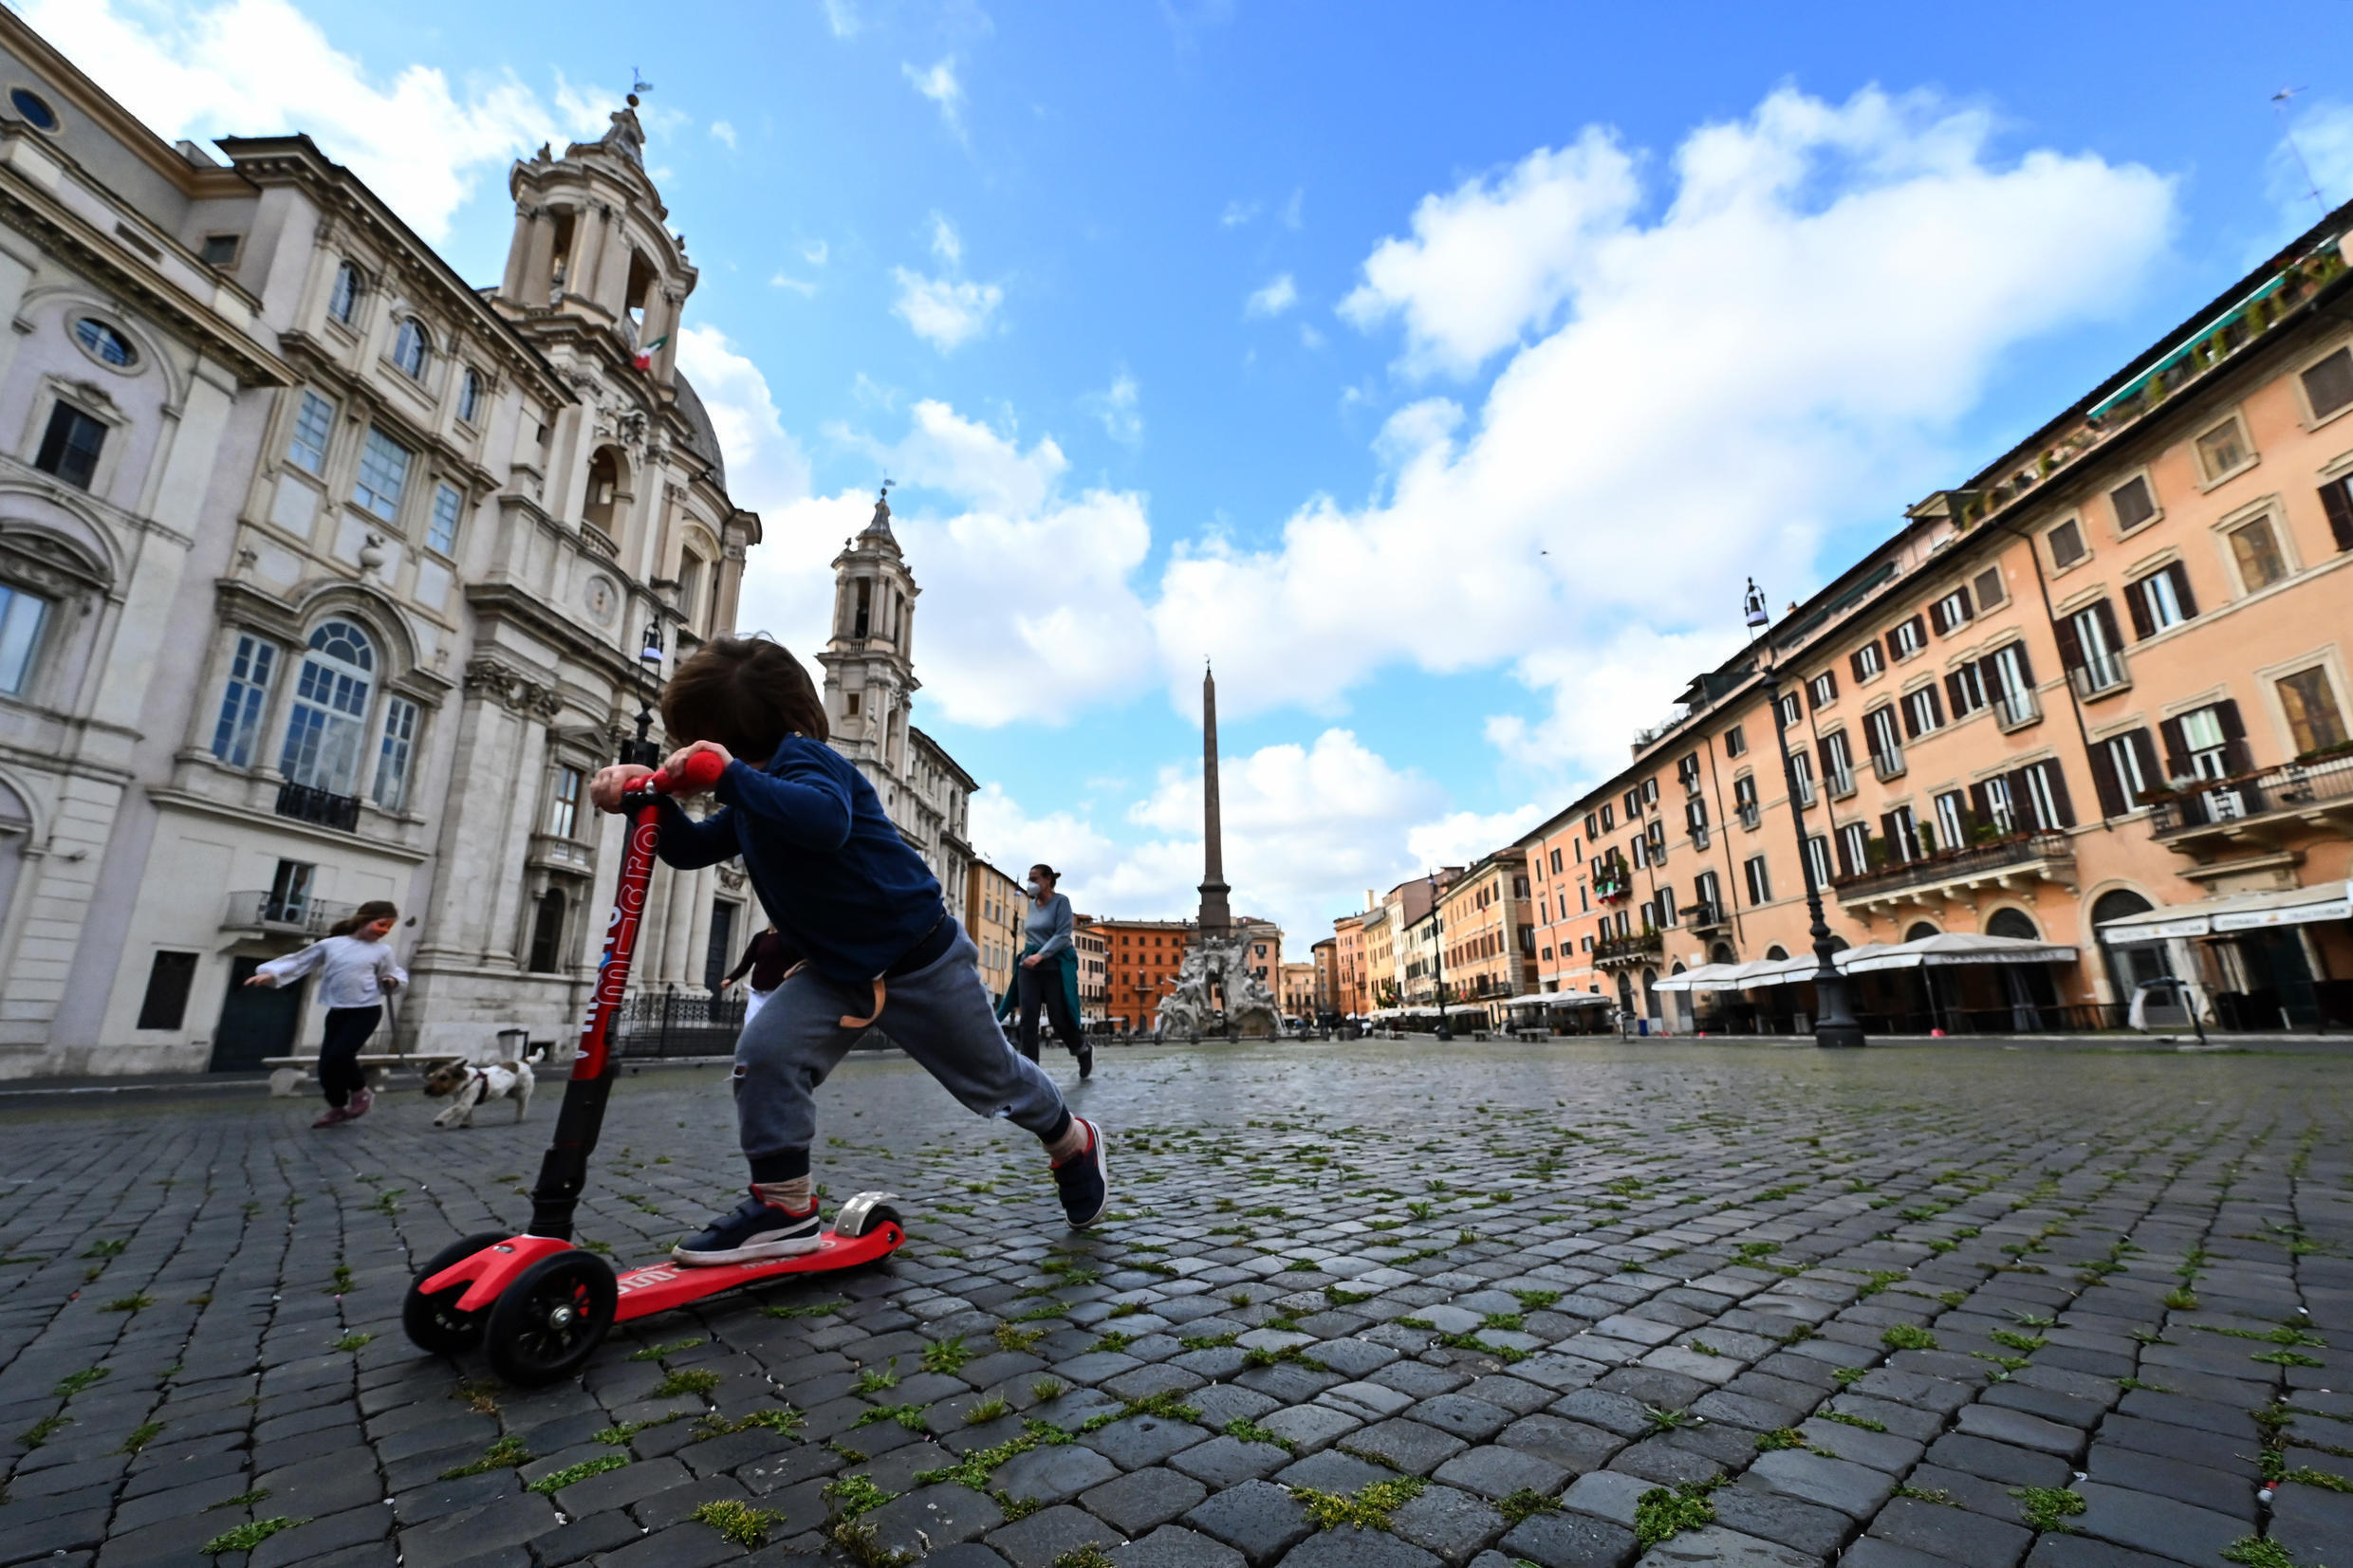 Young children play in the streets of Rome, Italy, as the country gradually lifts lockdown, 4 May 2020.